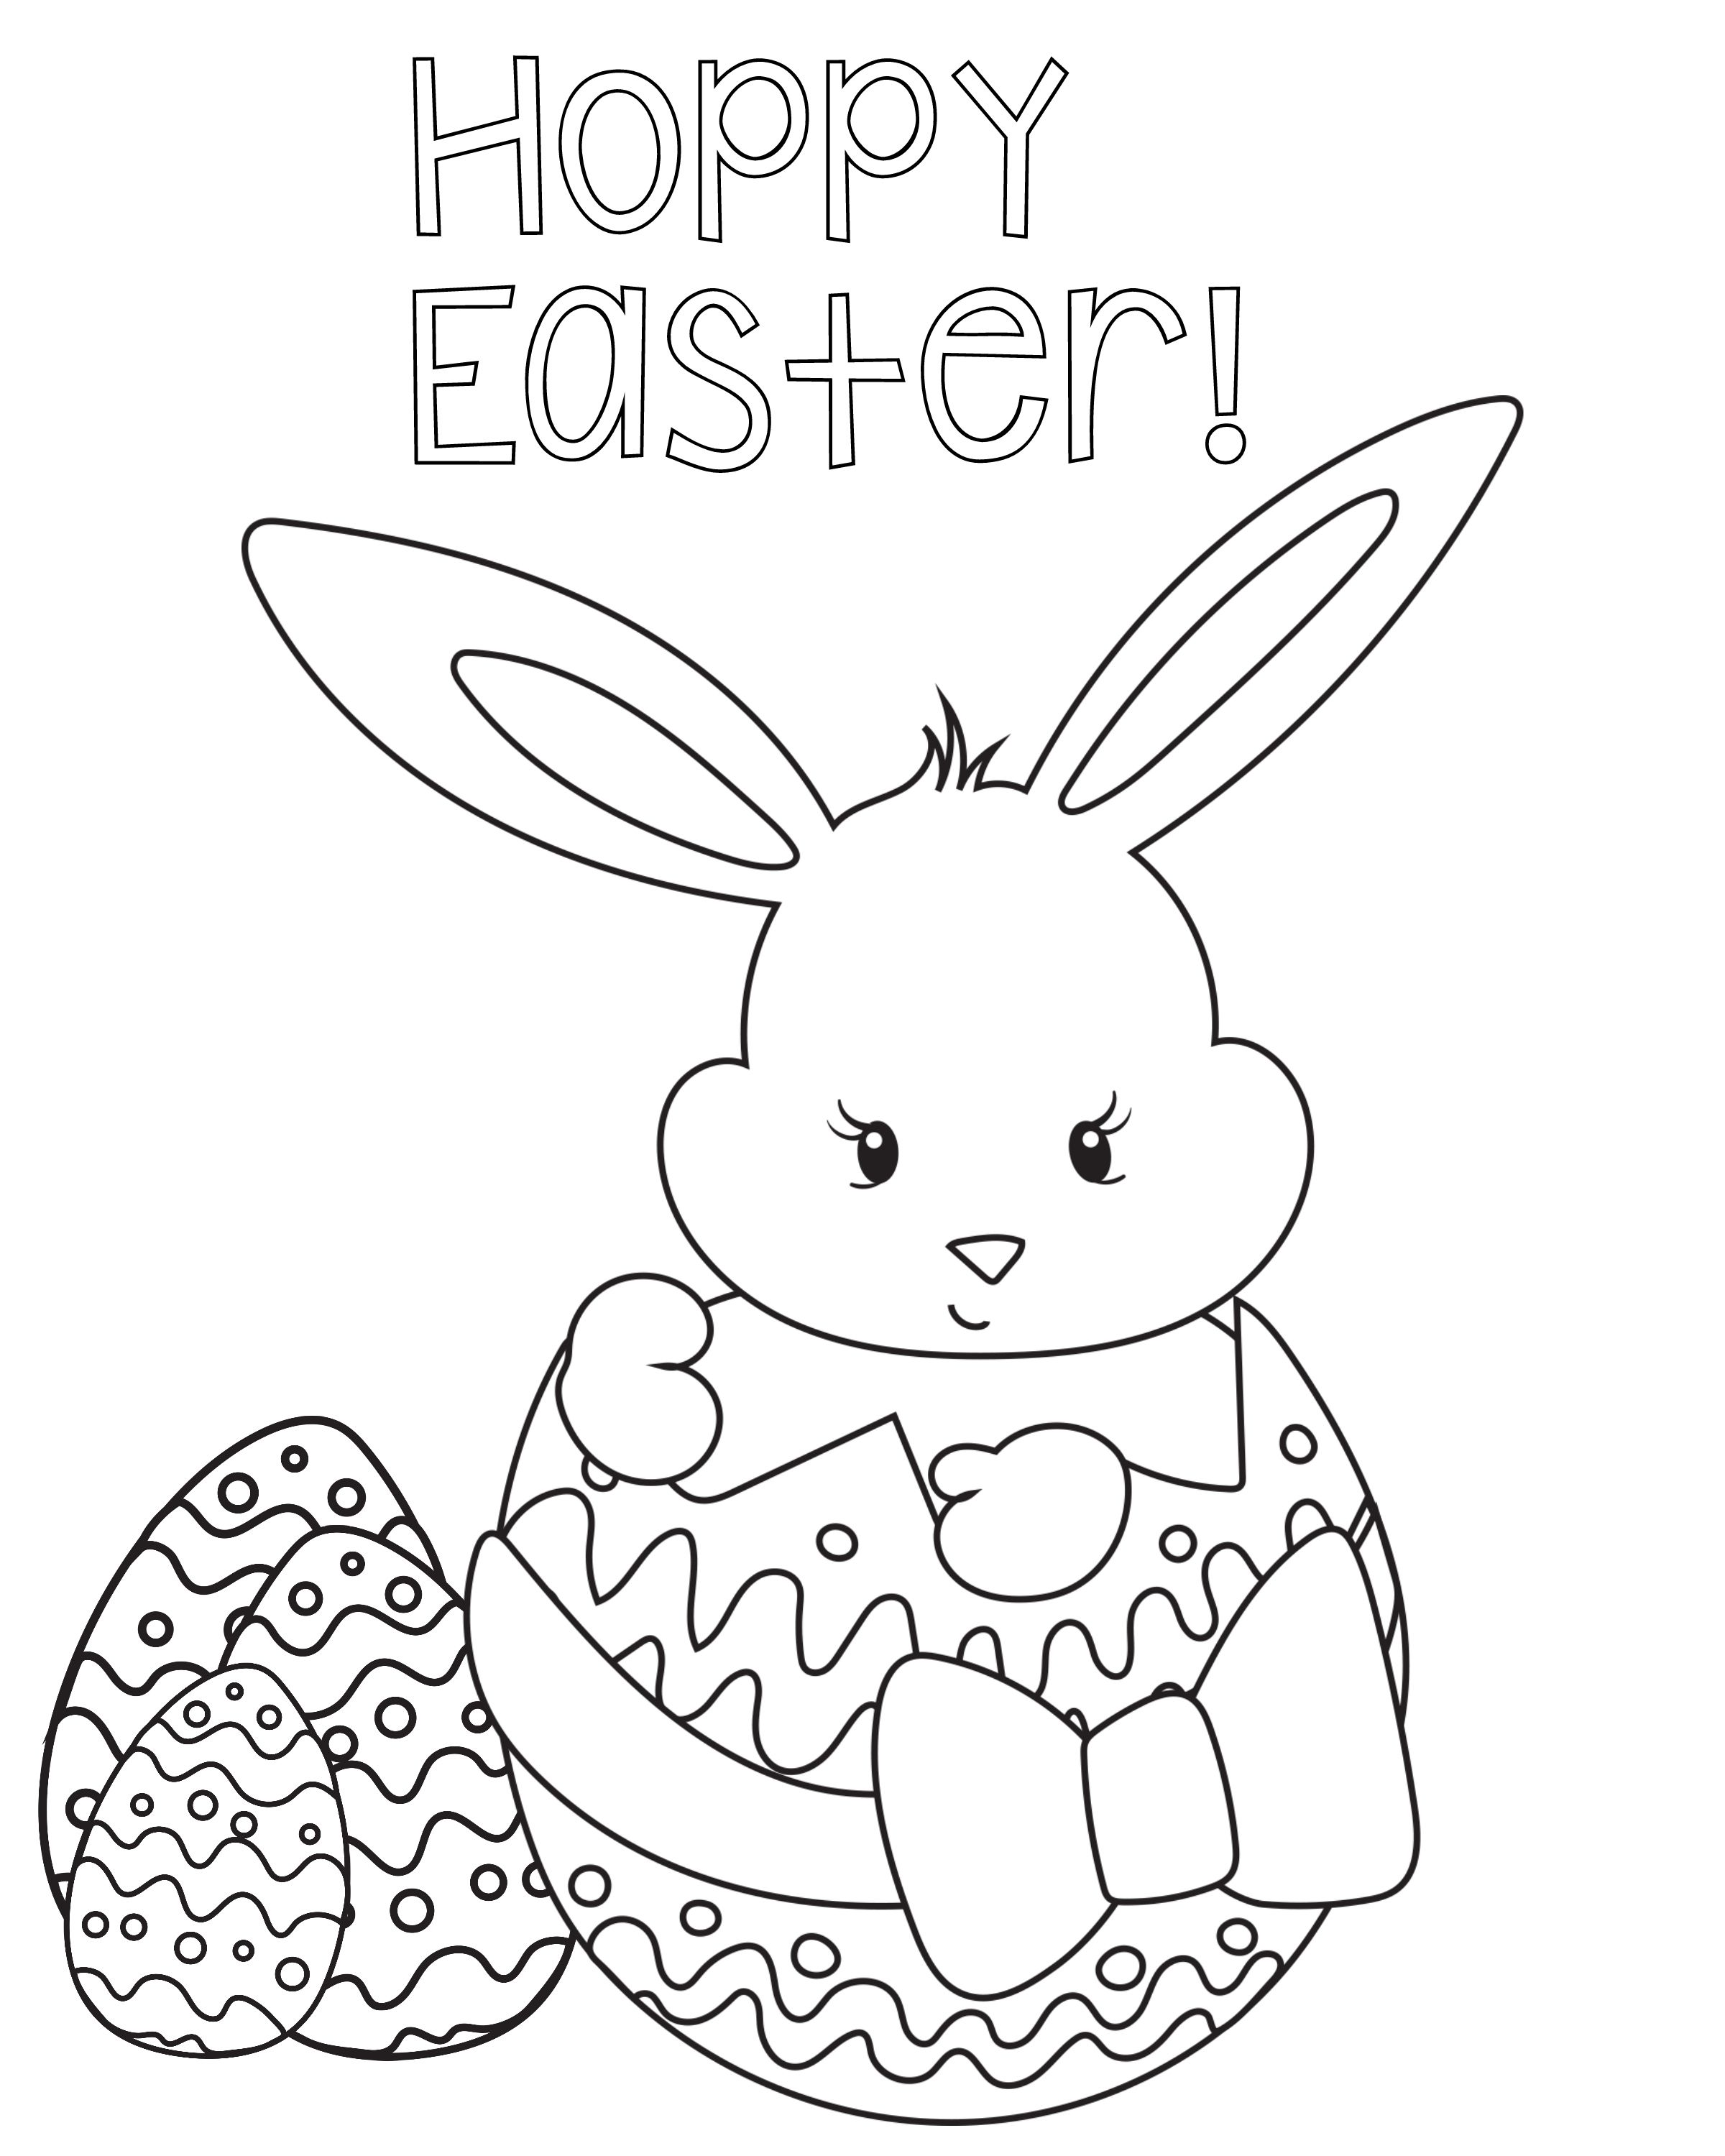 Pin by jitendra Singh on Happy Easter Coloring Pages